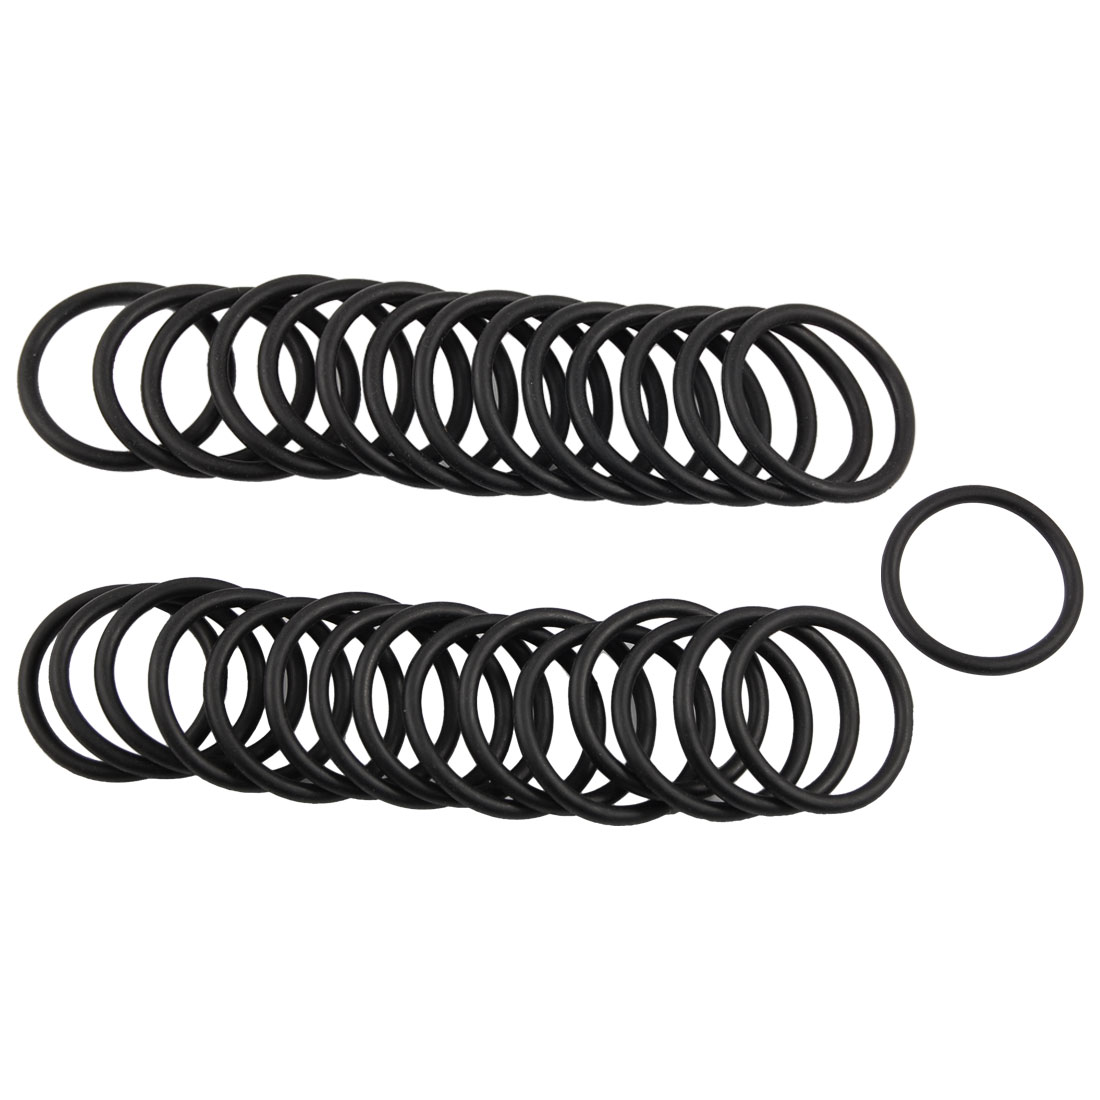 50 Pcs Black Nitrile Rubber O Rings Oil Sealing Gaskets 33mm x 3mm